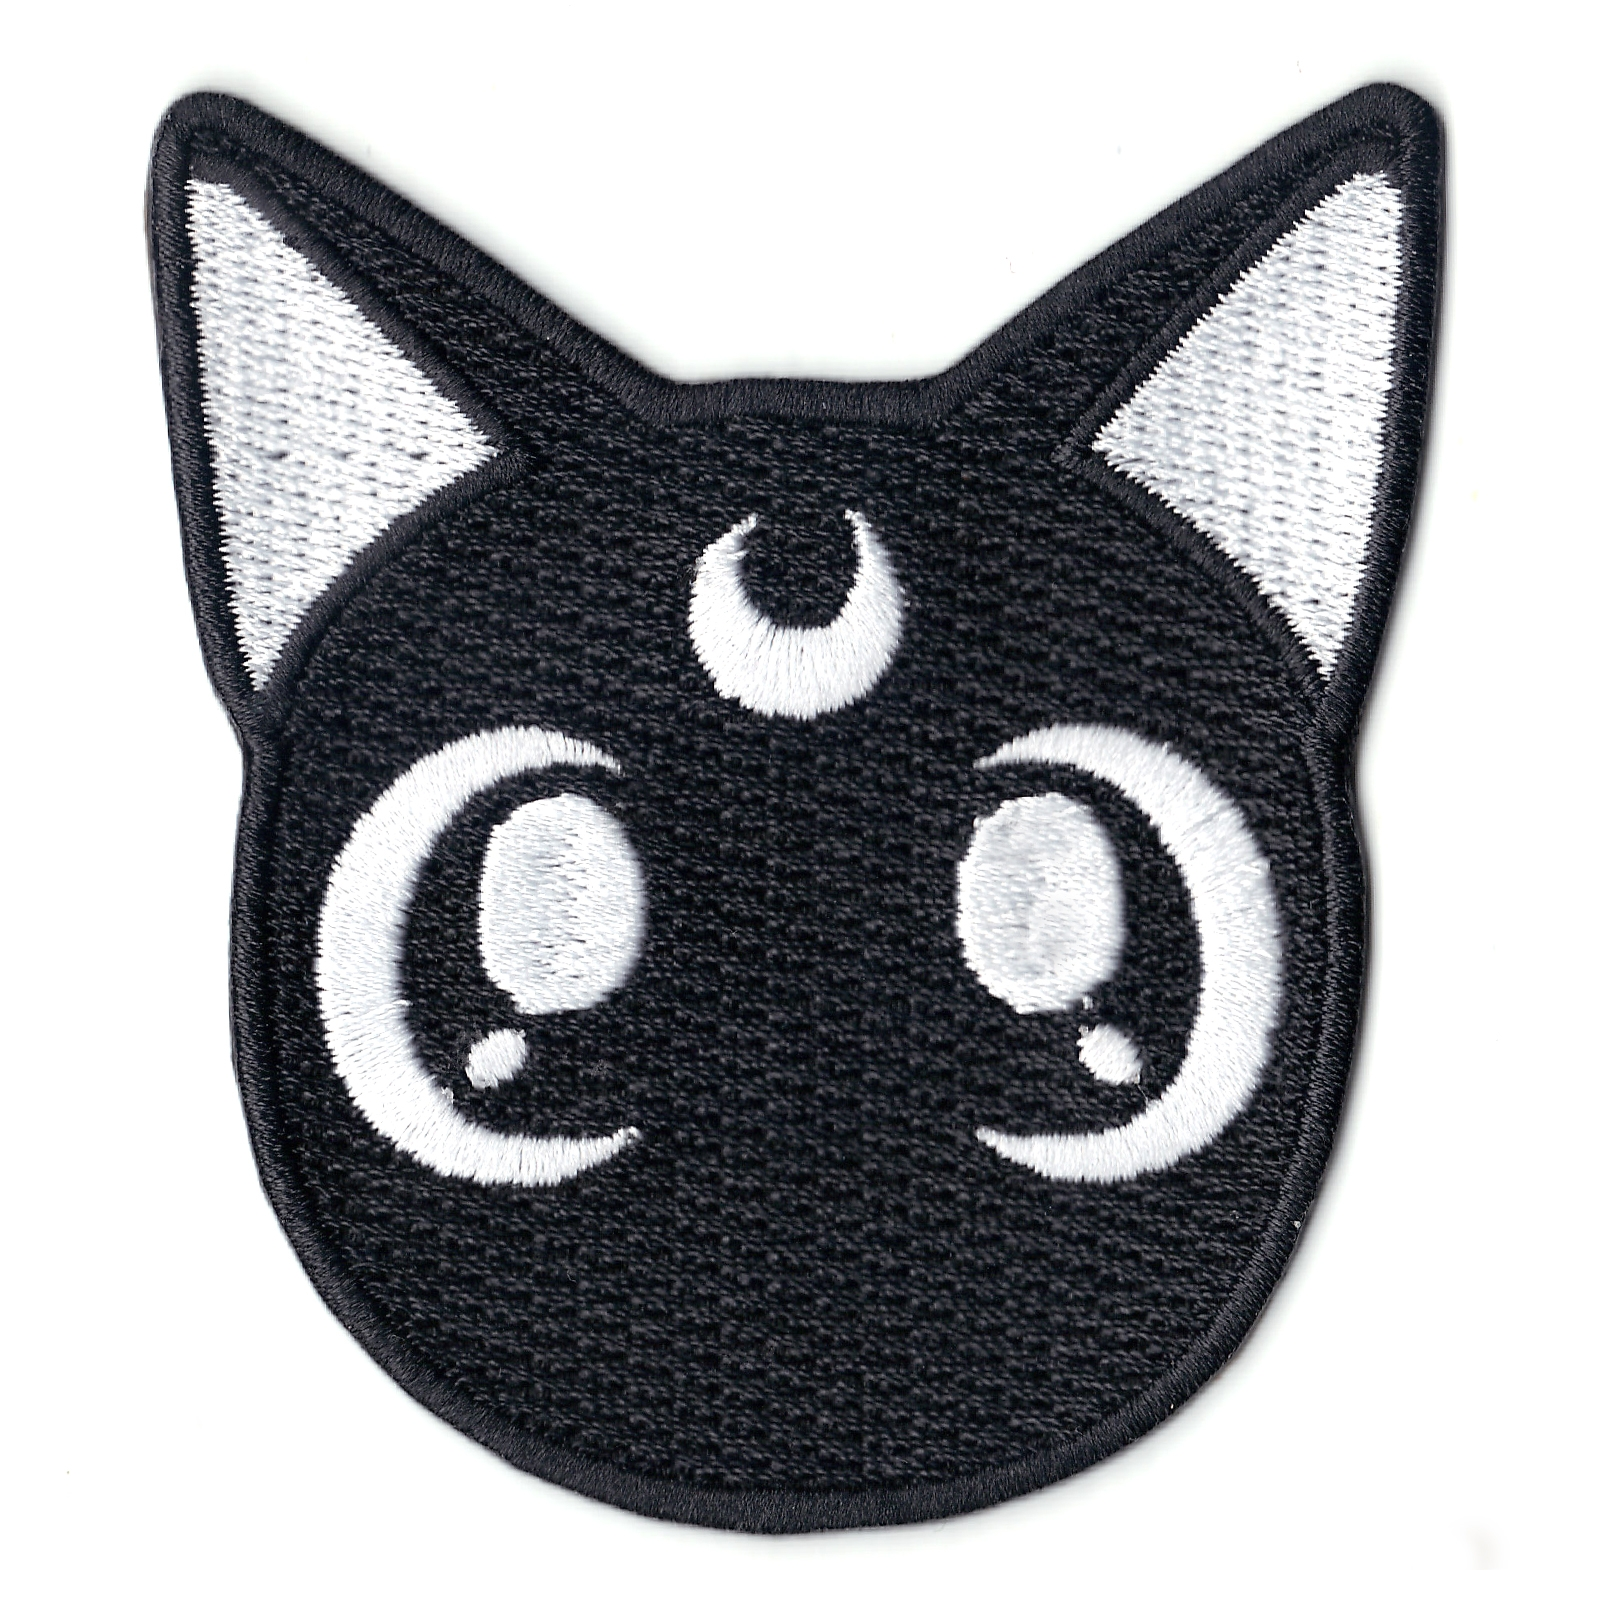 Anime Sailor Black Cat Iron On Patch